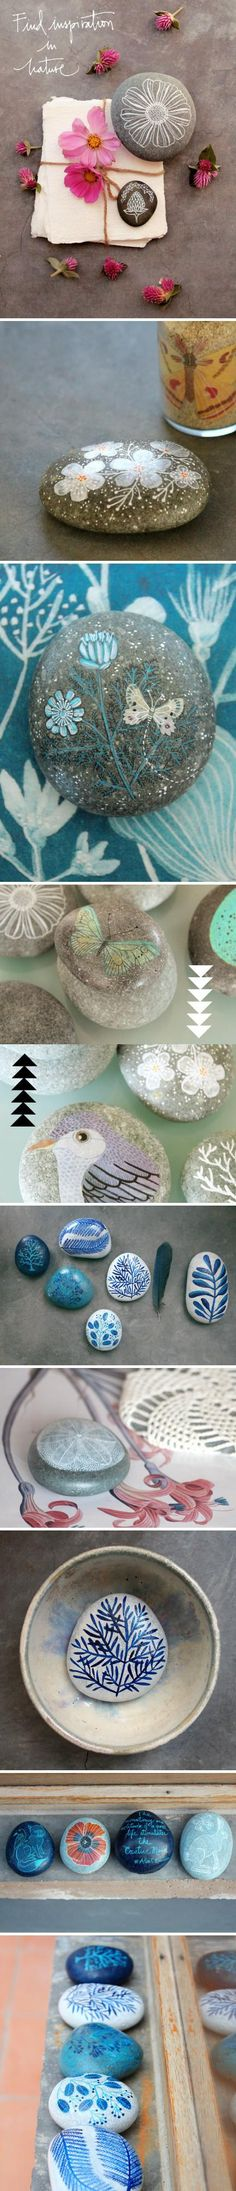 Rock painting. could be used as a paper weight, or as bookends if you had large enough rocks. Love painted rocks!